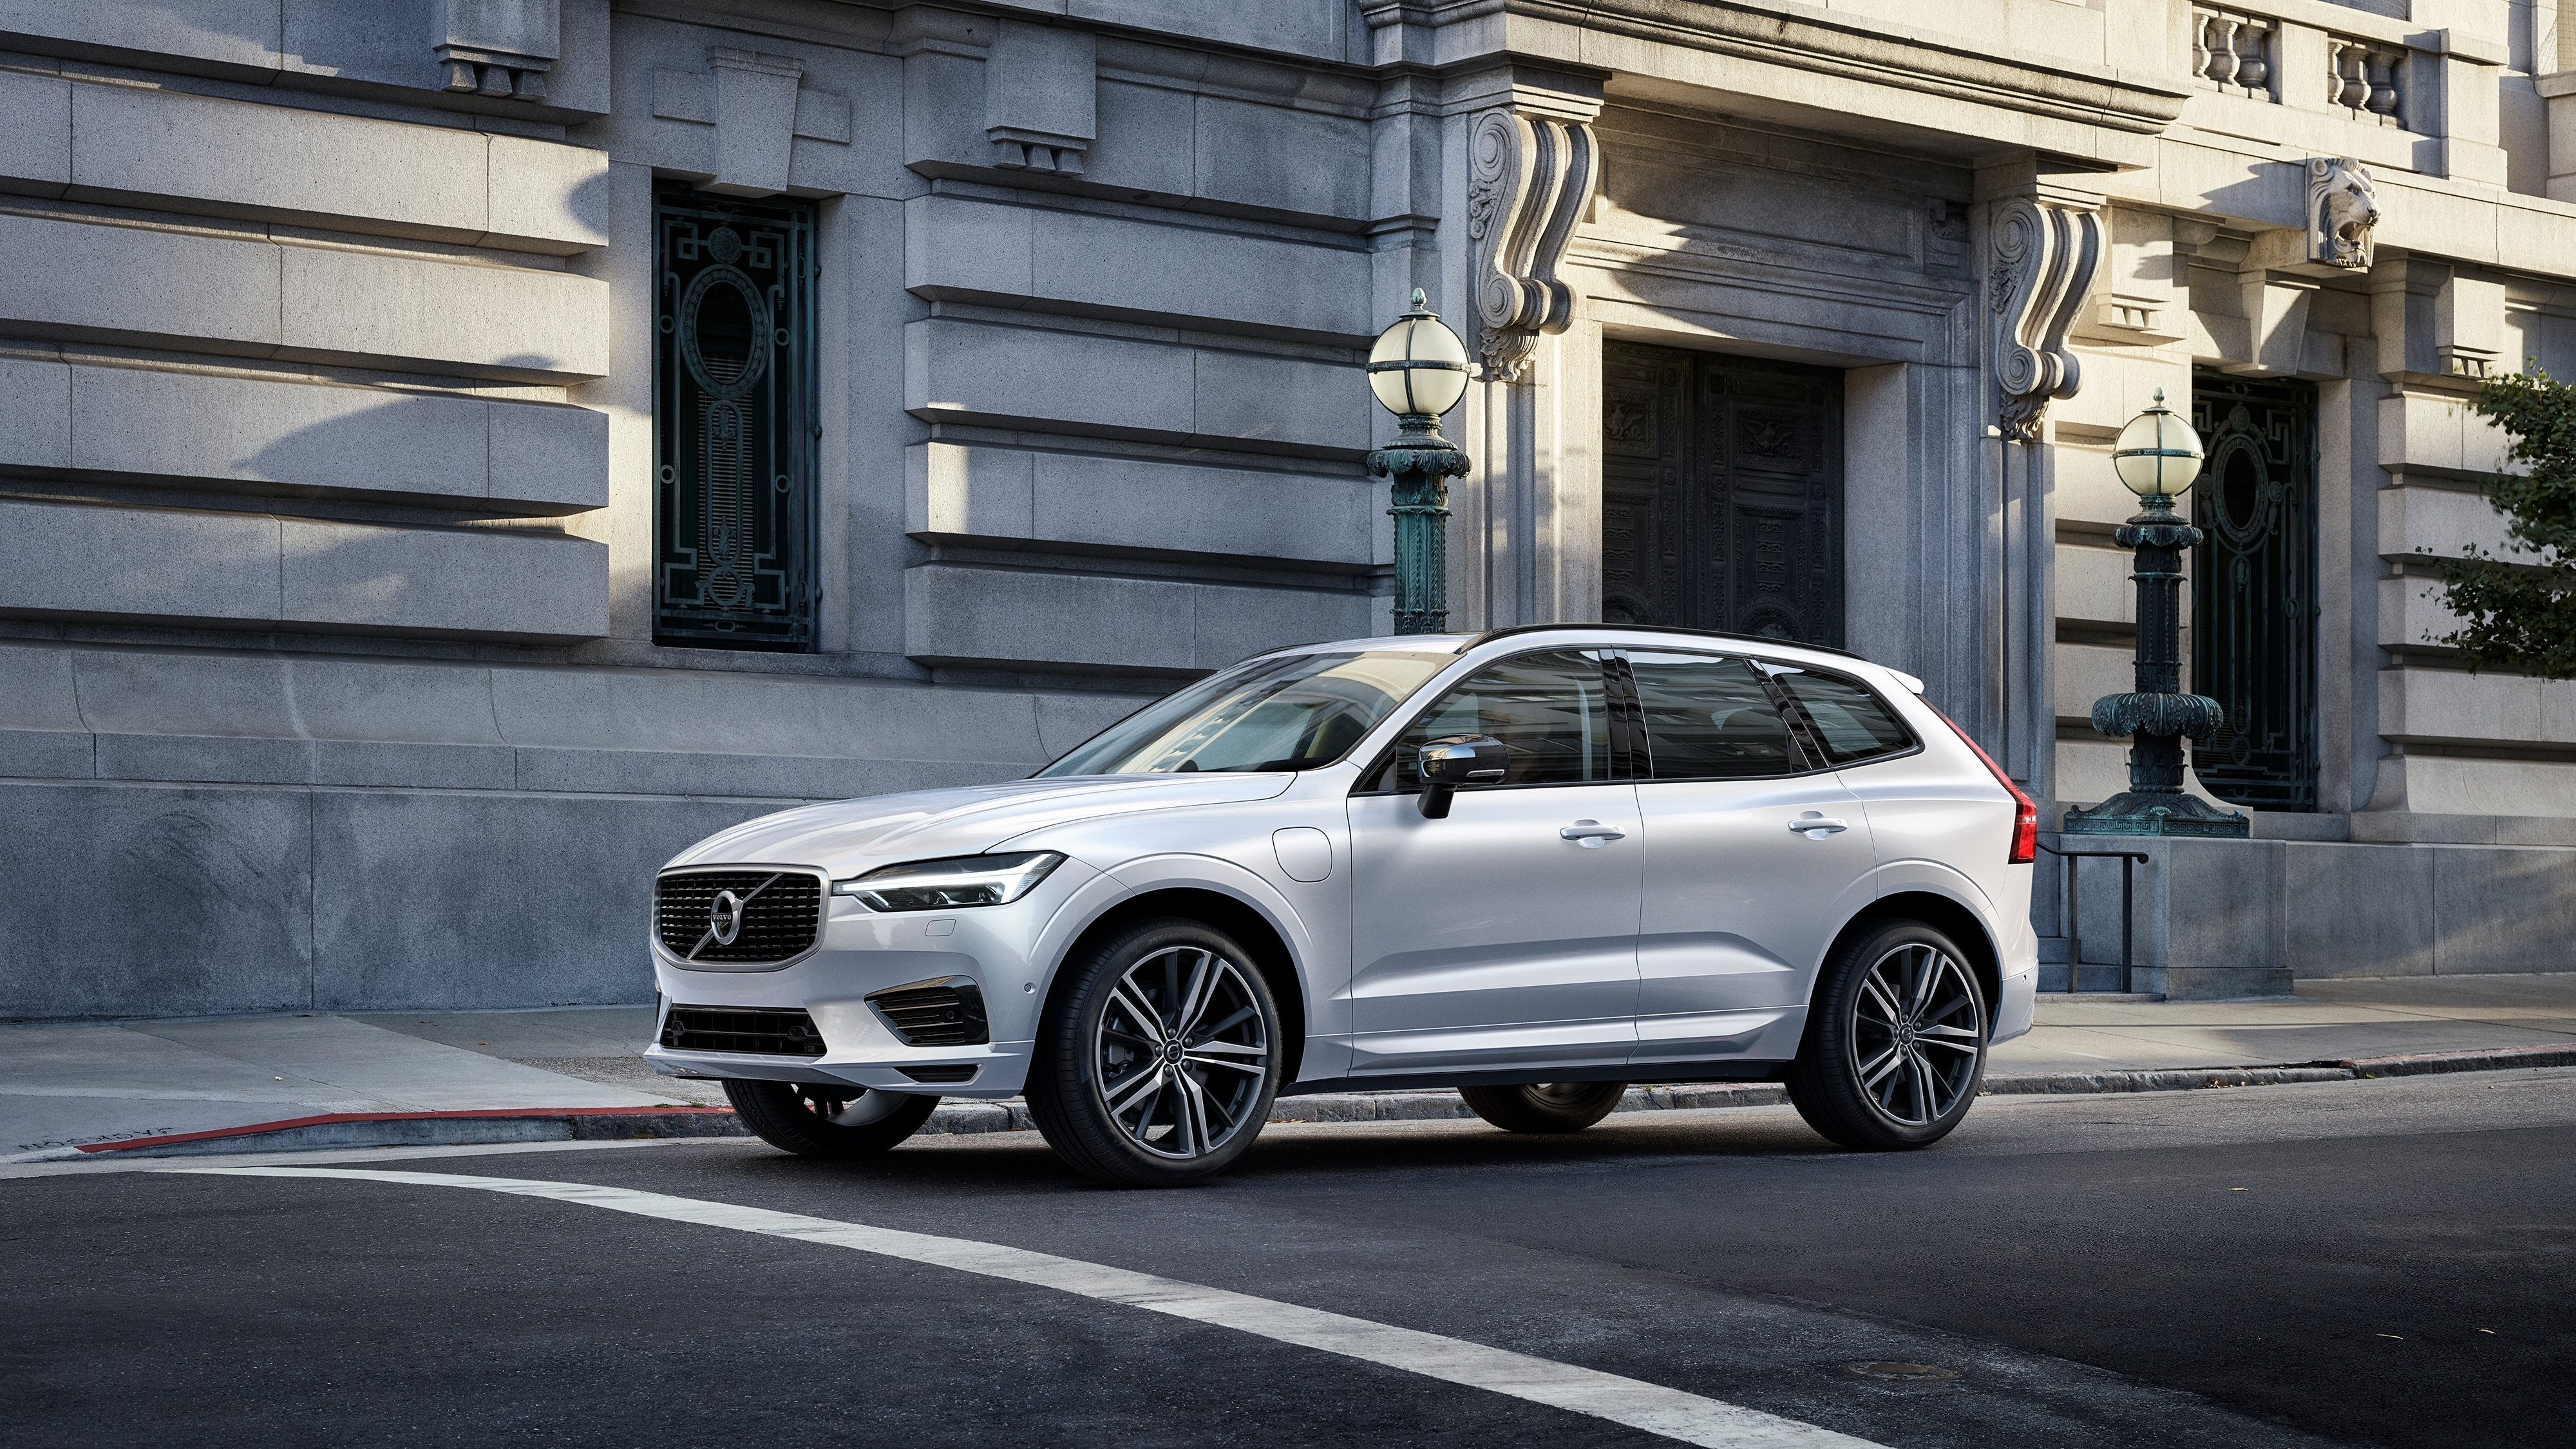 A Volvo XC60 R-Design standing on the street in front of an old building